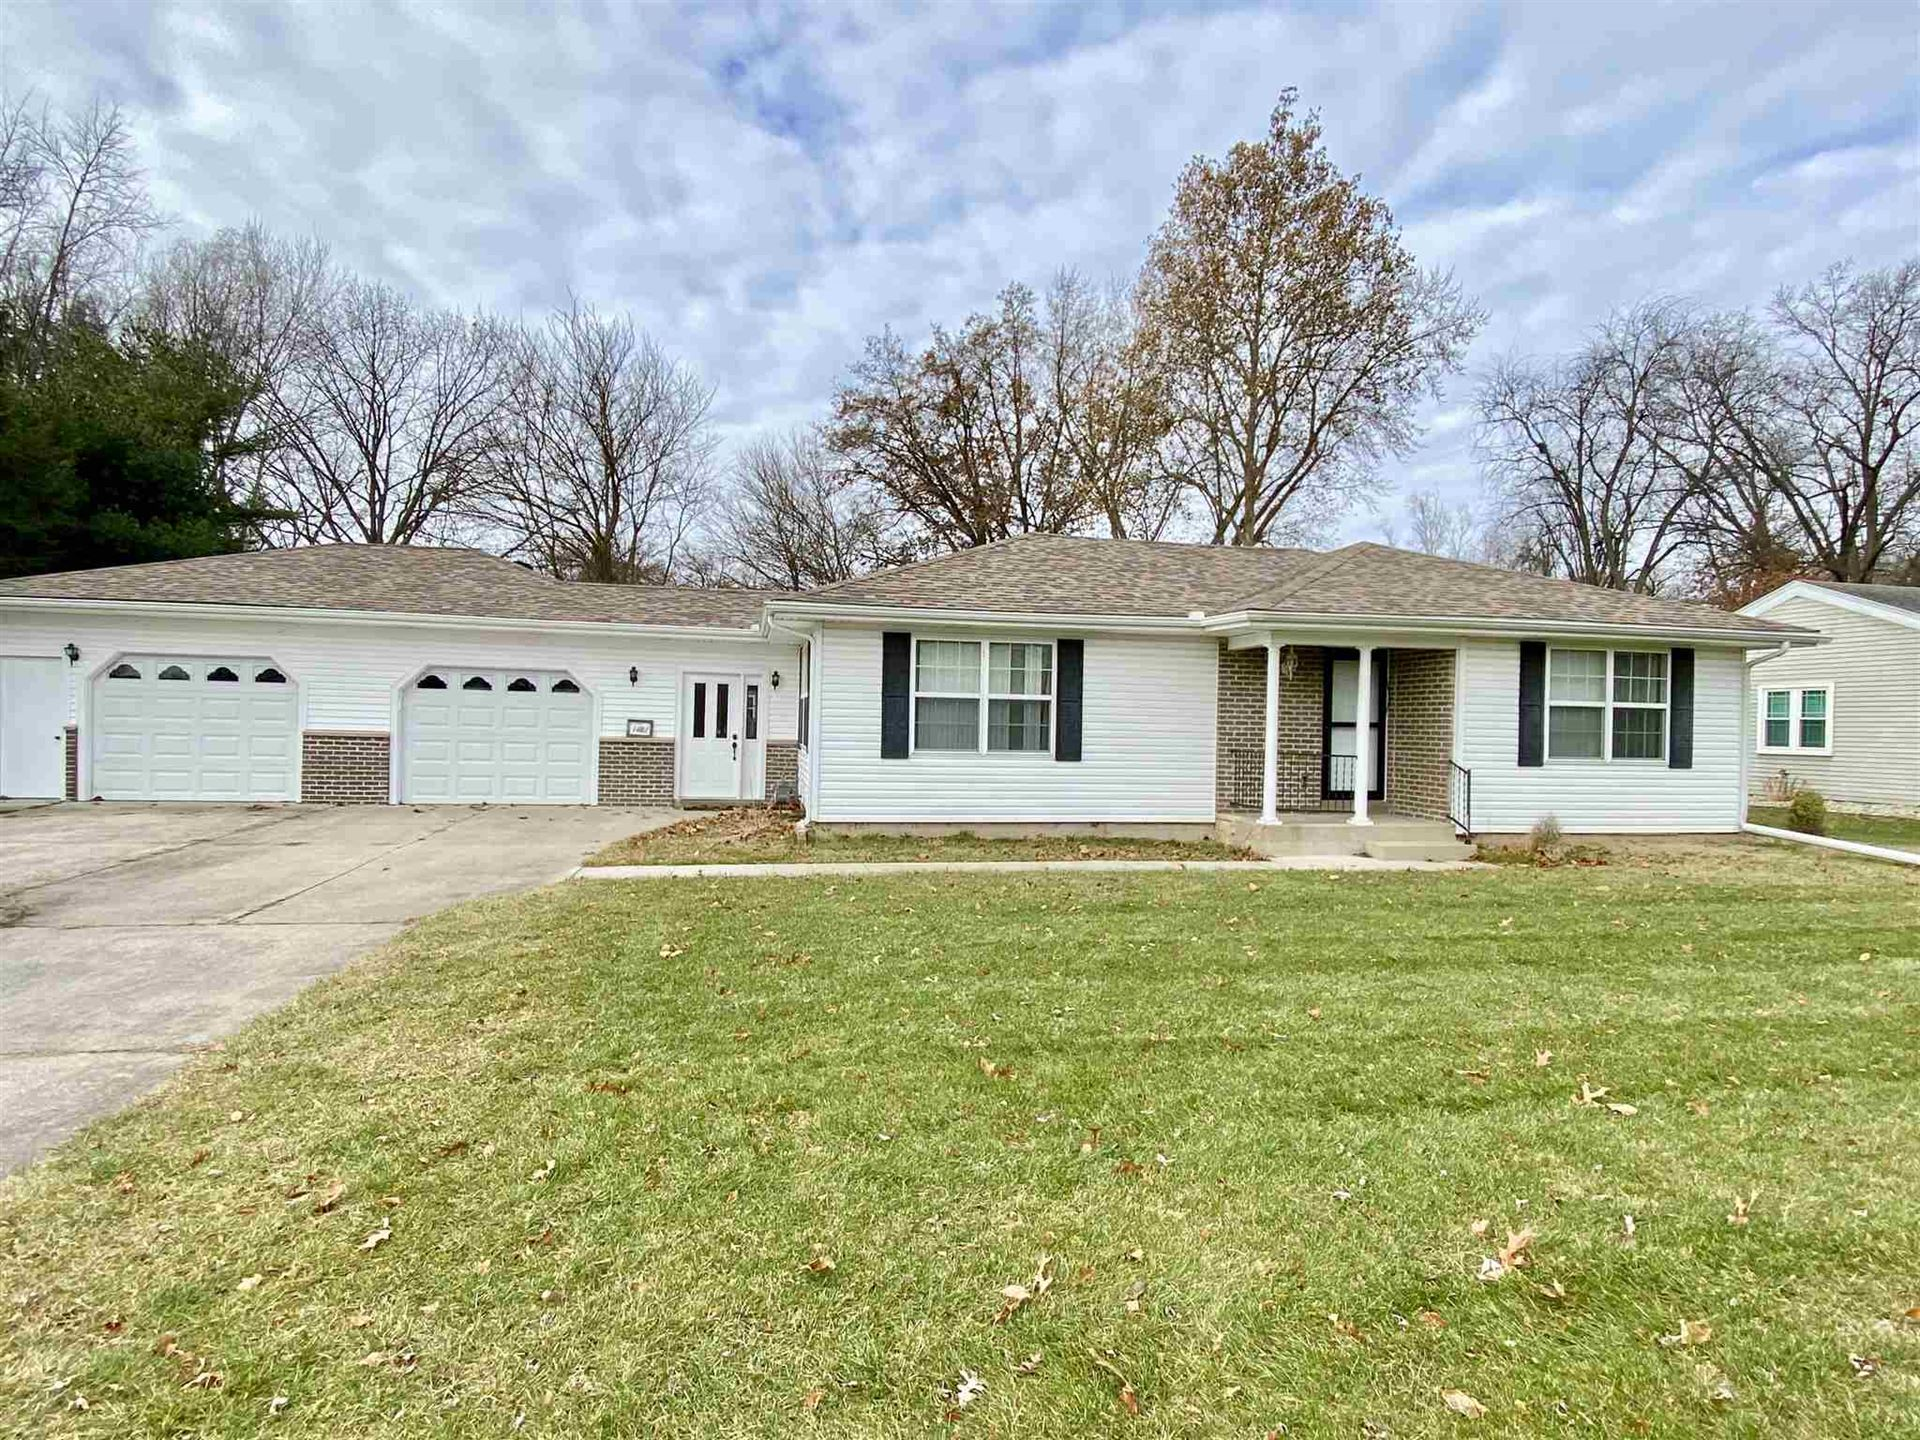 1121 Bay Street, Elkhart, IN 46514 - MLS#: 201952123